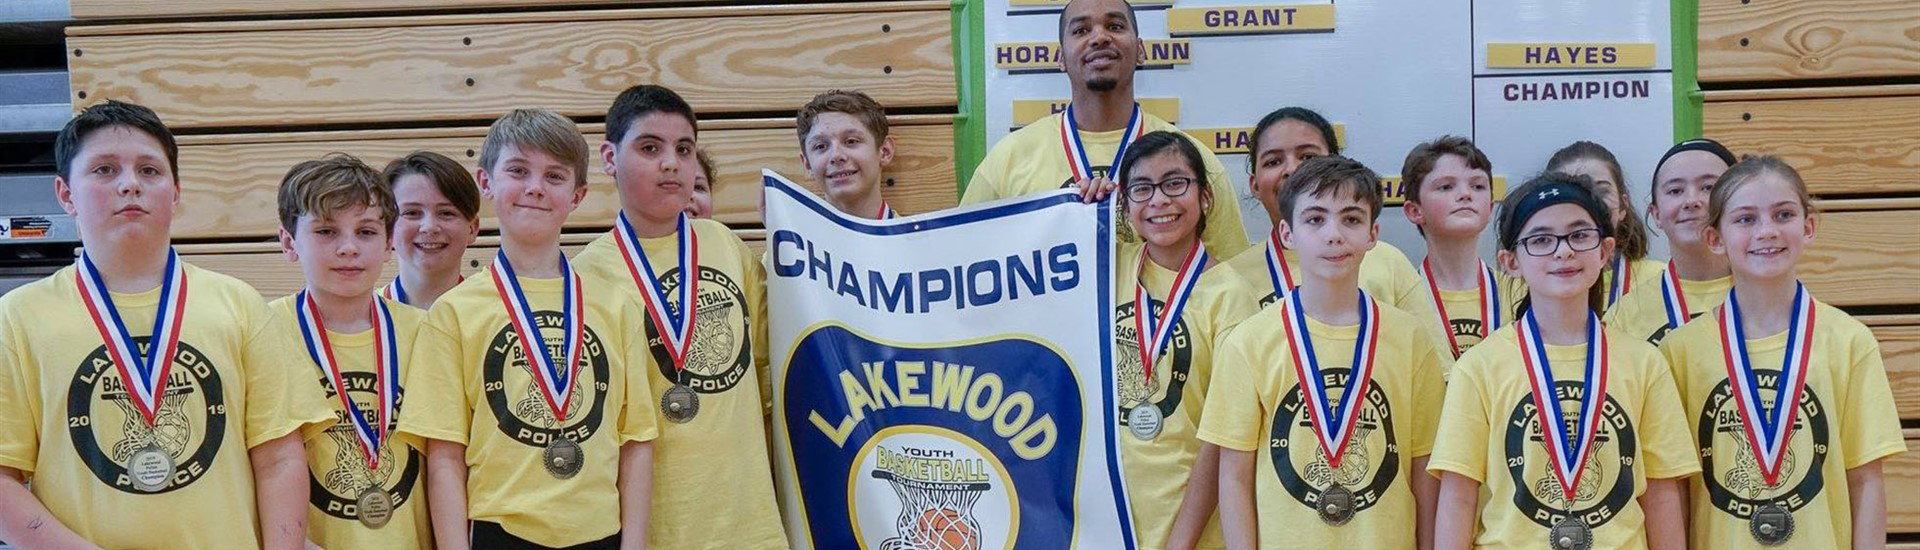 Youth Basketball Tournament champs: Hayes Elementary